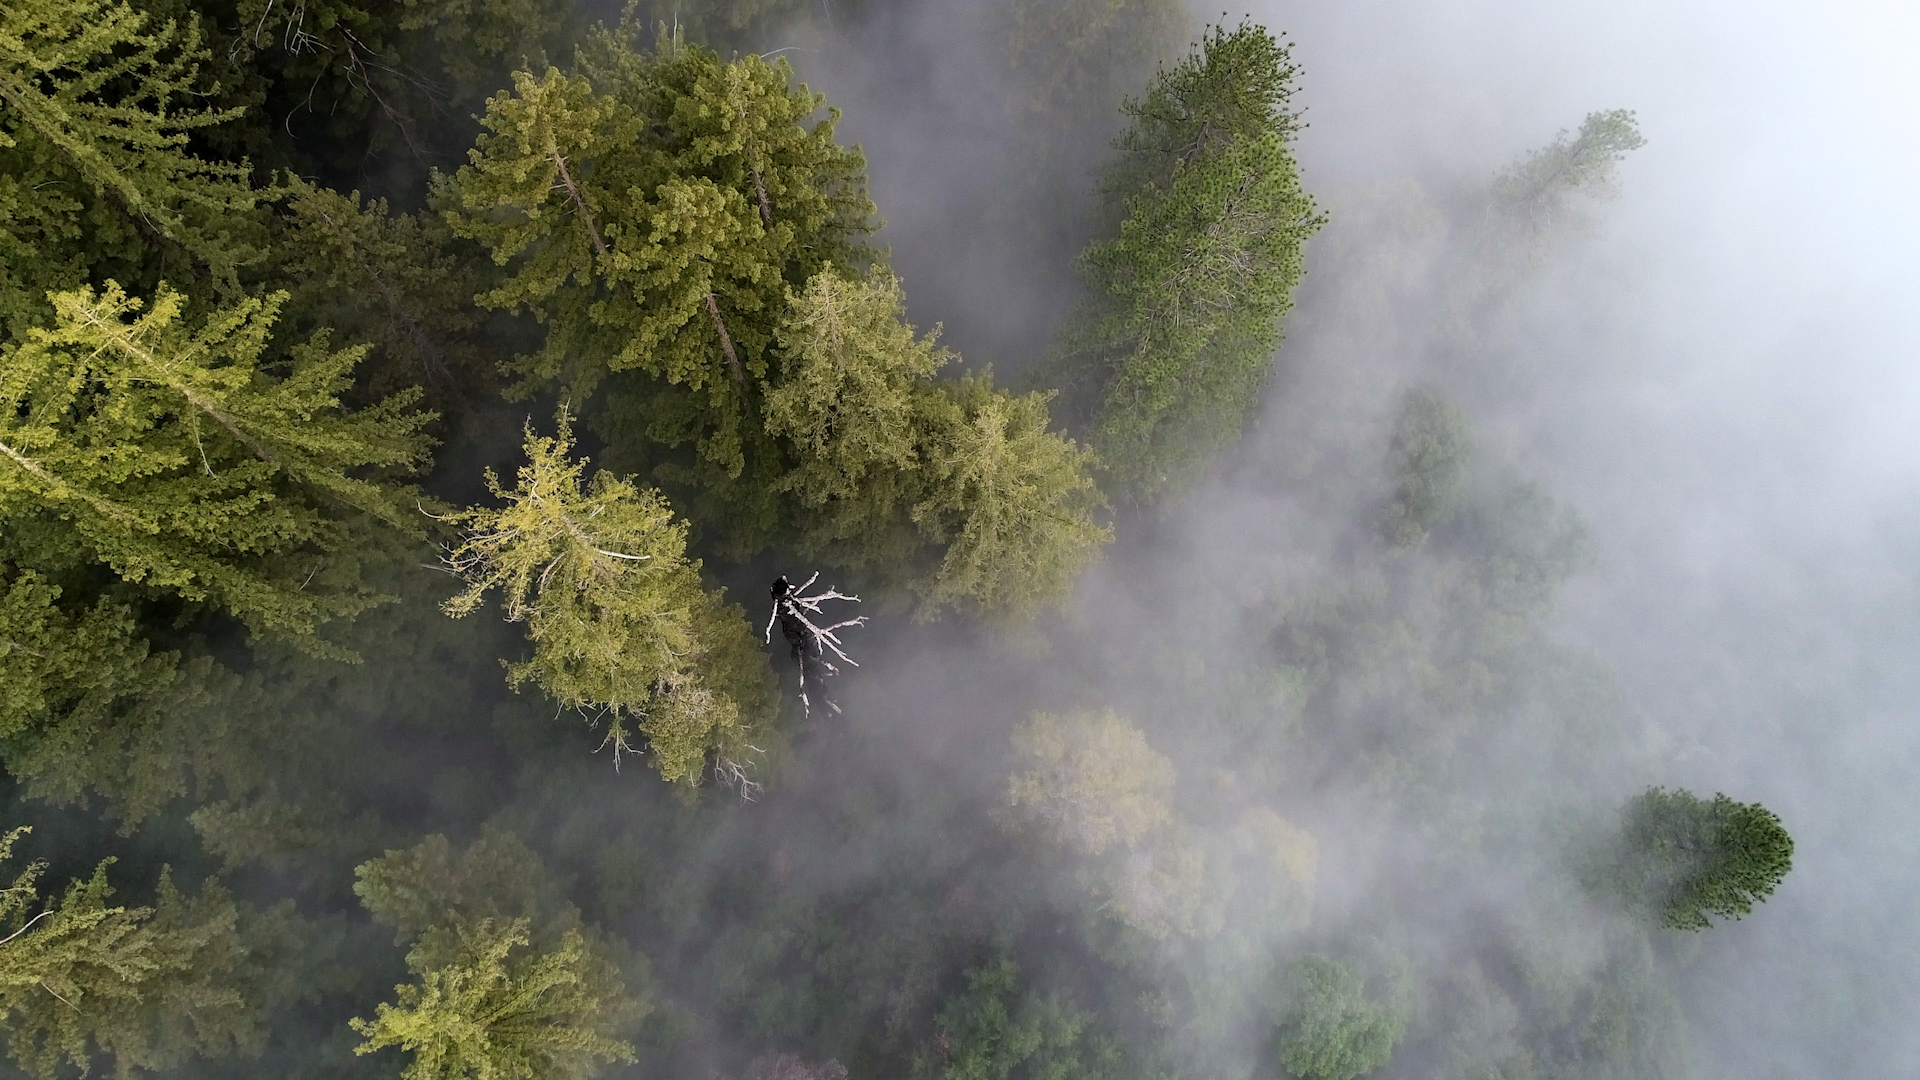 Drone image looking down at Redwood Trees